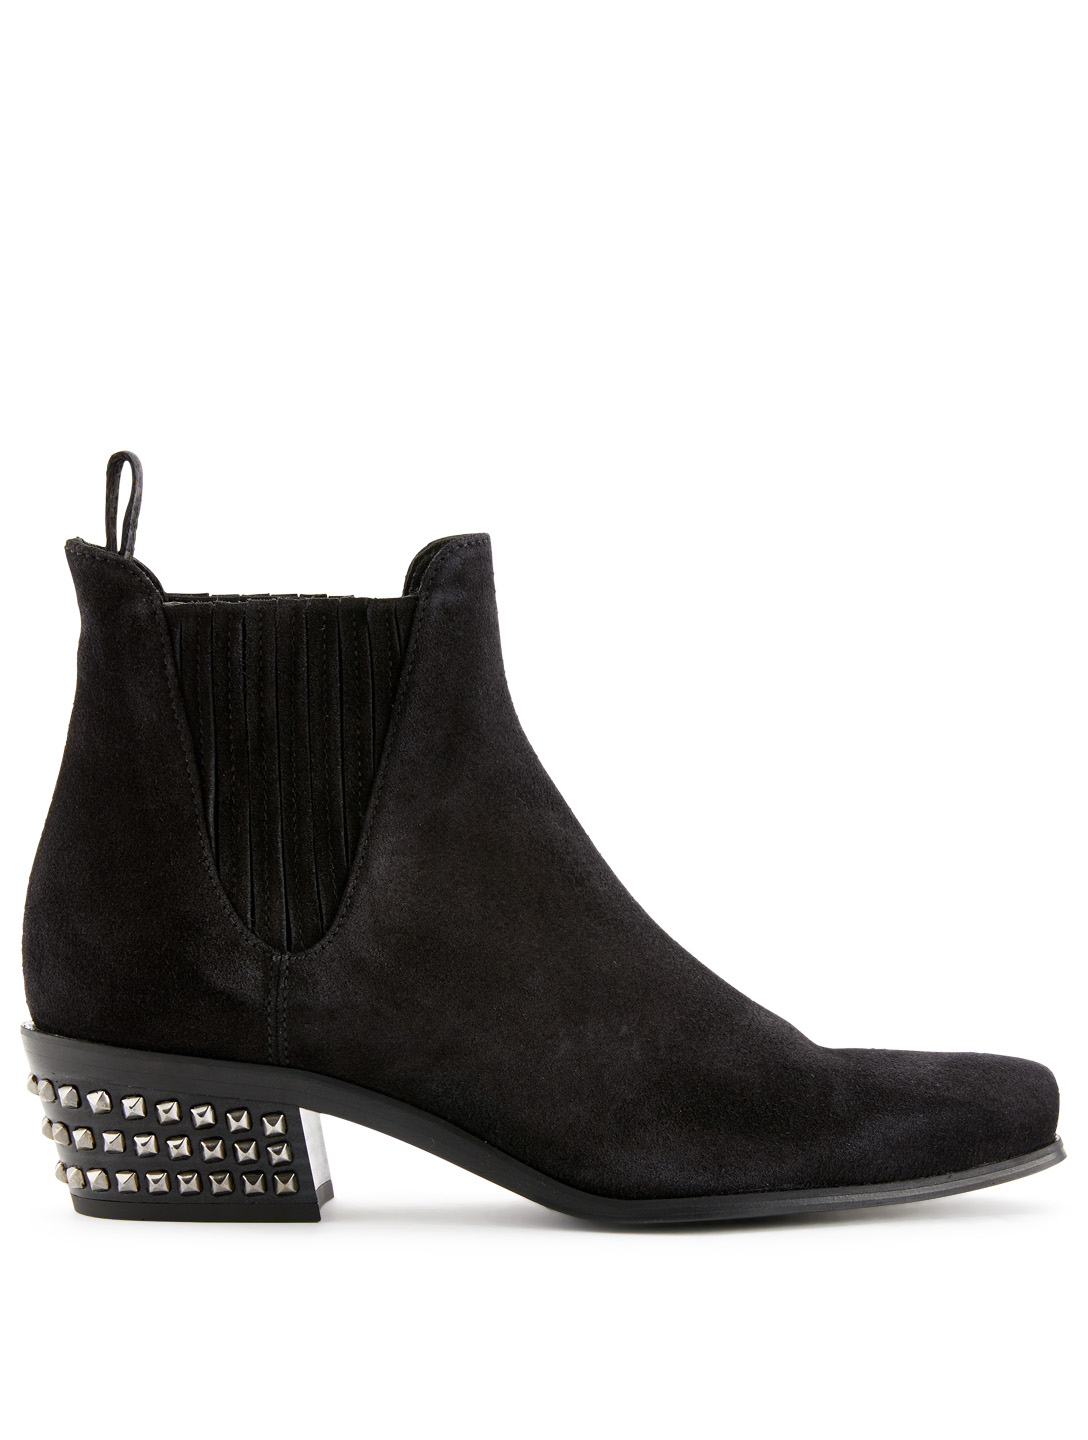 03e71580d87070 MIU MIU Suede Ankle Boots With Stud Detail Womens Black ...